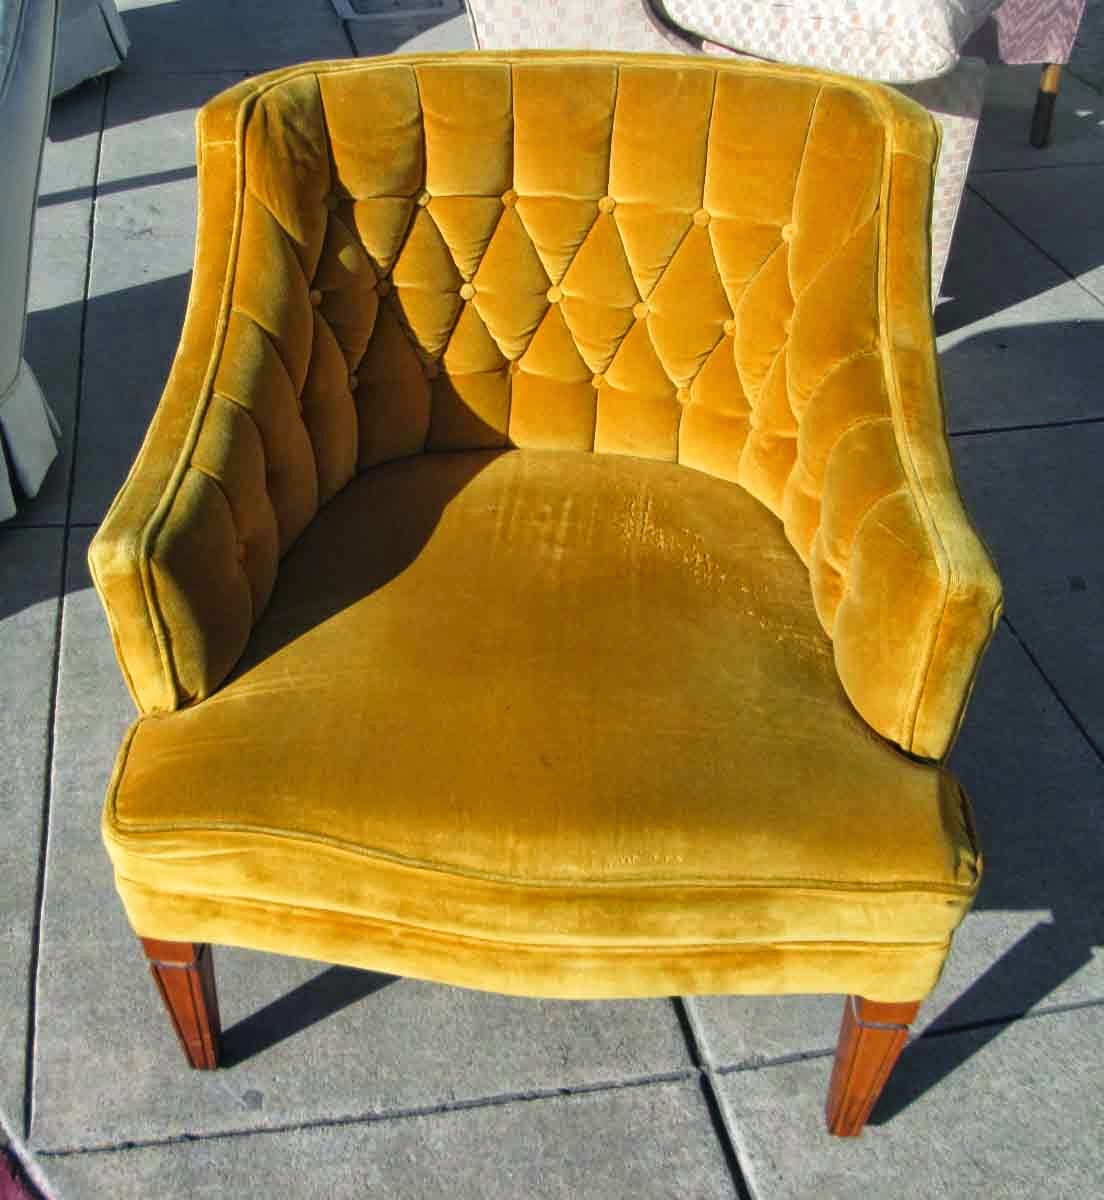 SOLD Vintage Goldenrod Arm Chair   $60